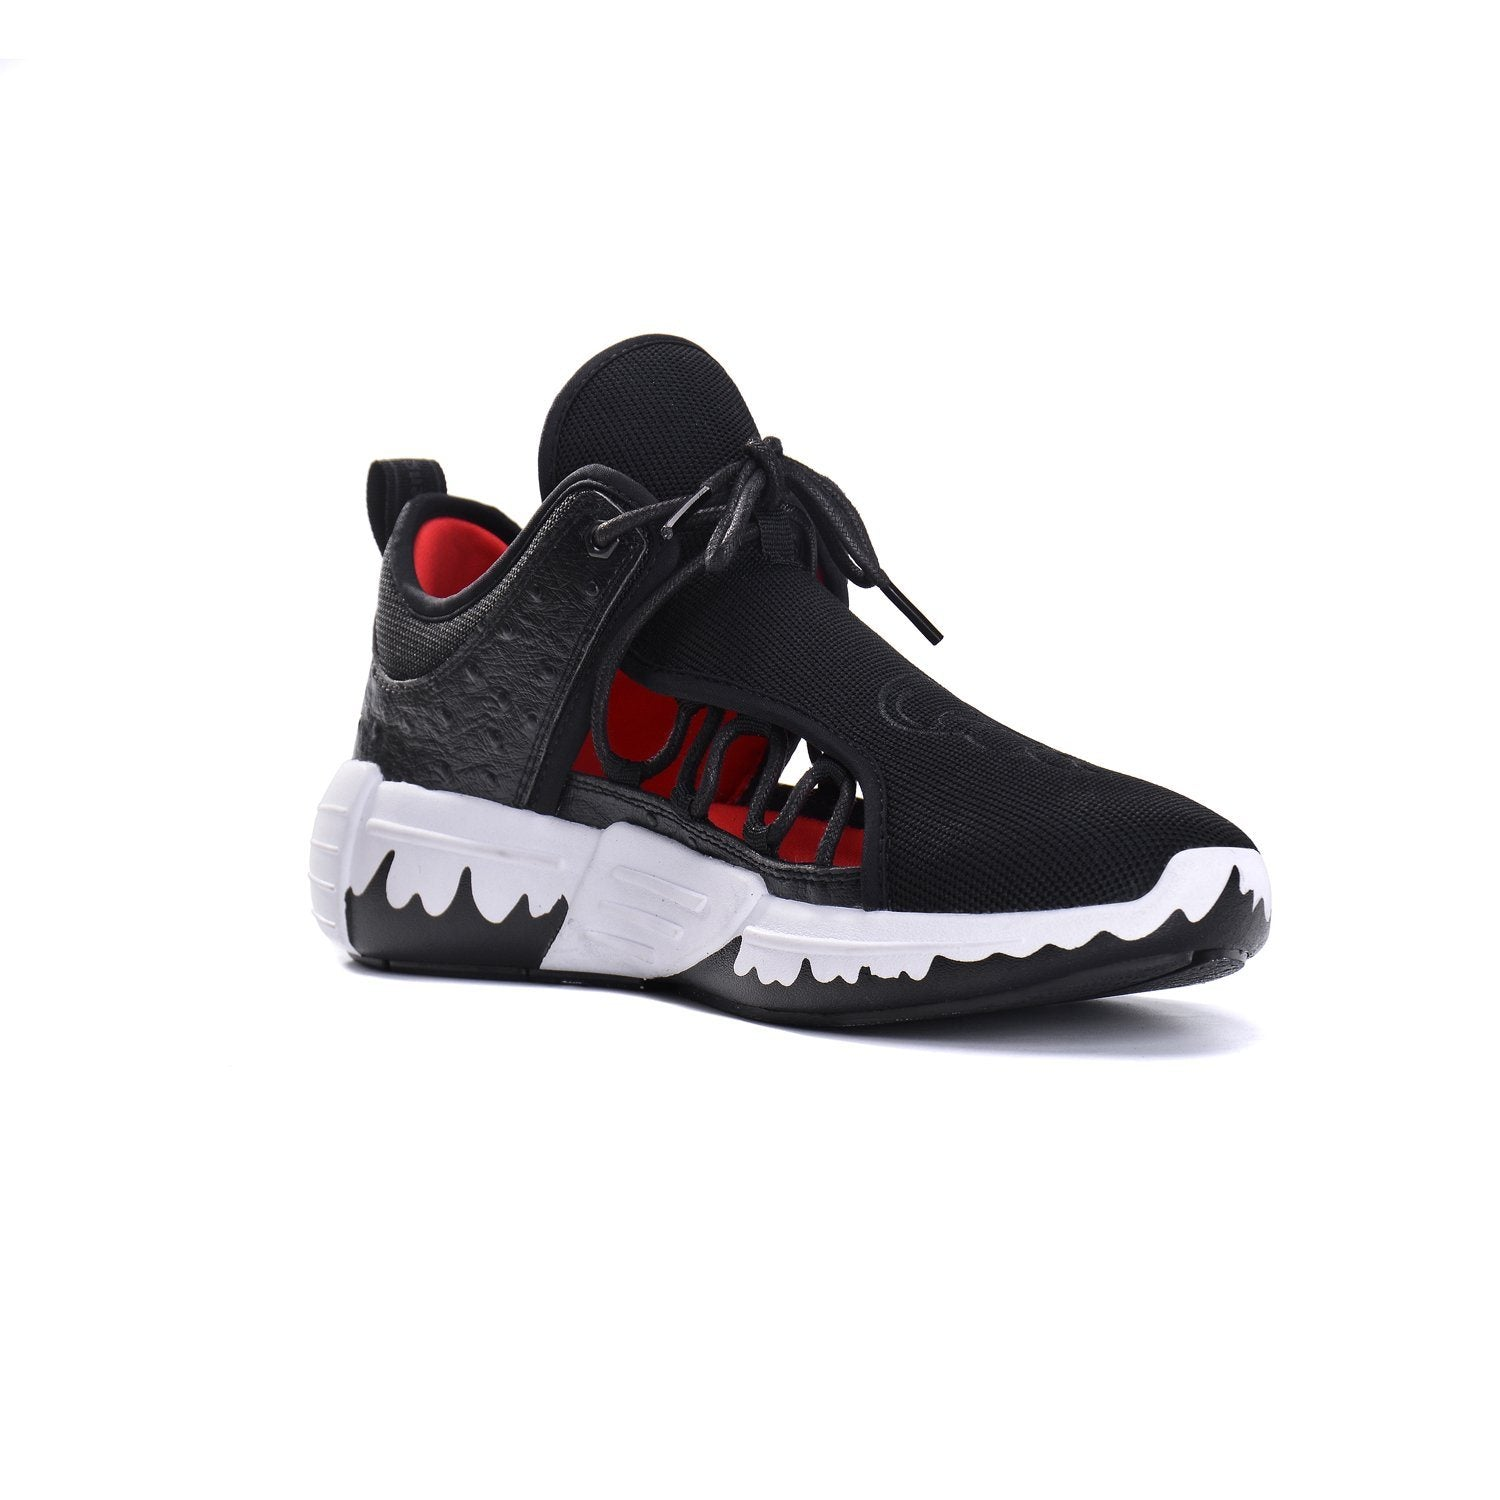 Hollow Out Fashion Sneakers(Black/White/Camouflage) - Soulsfeng